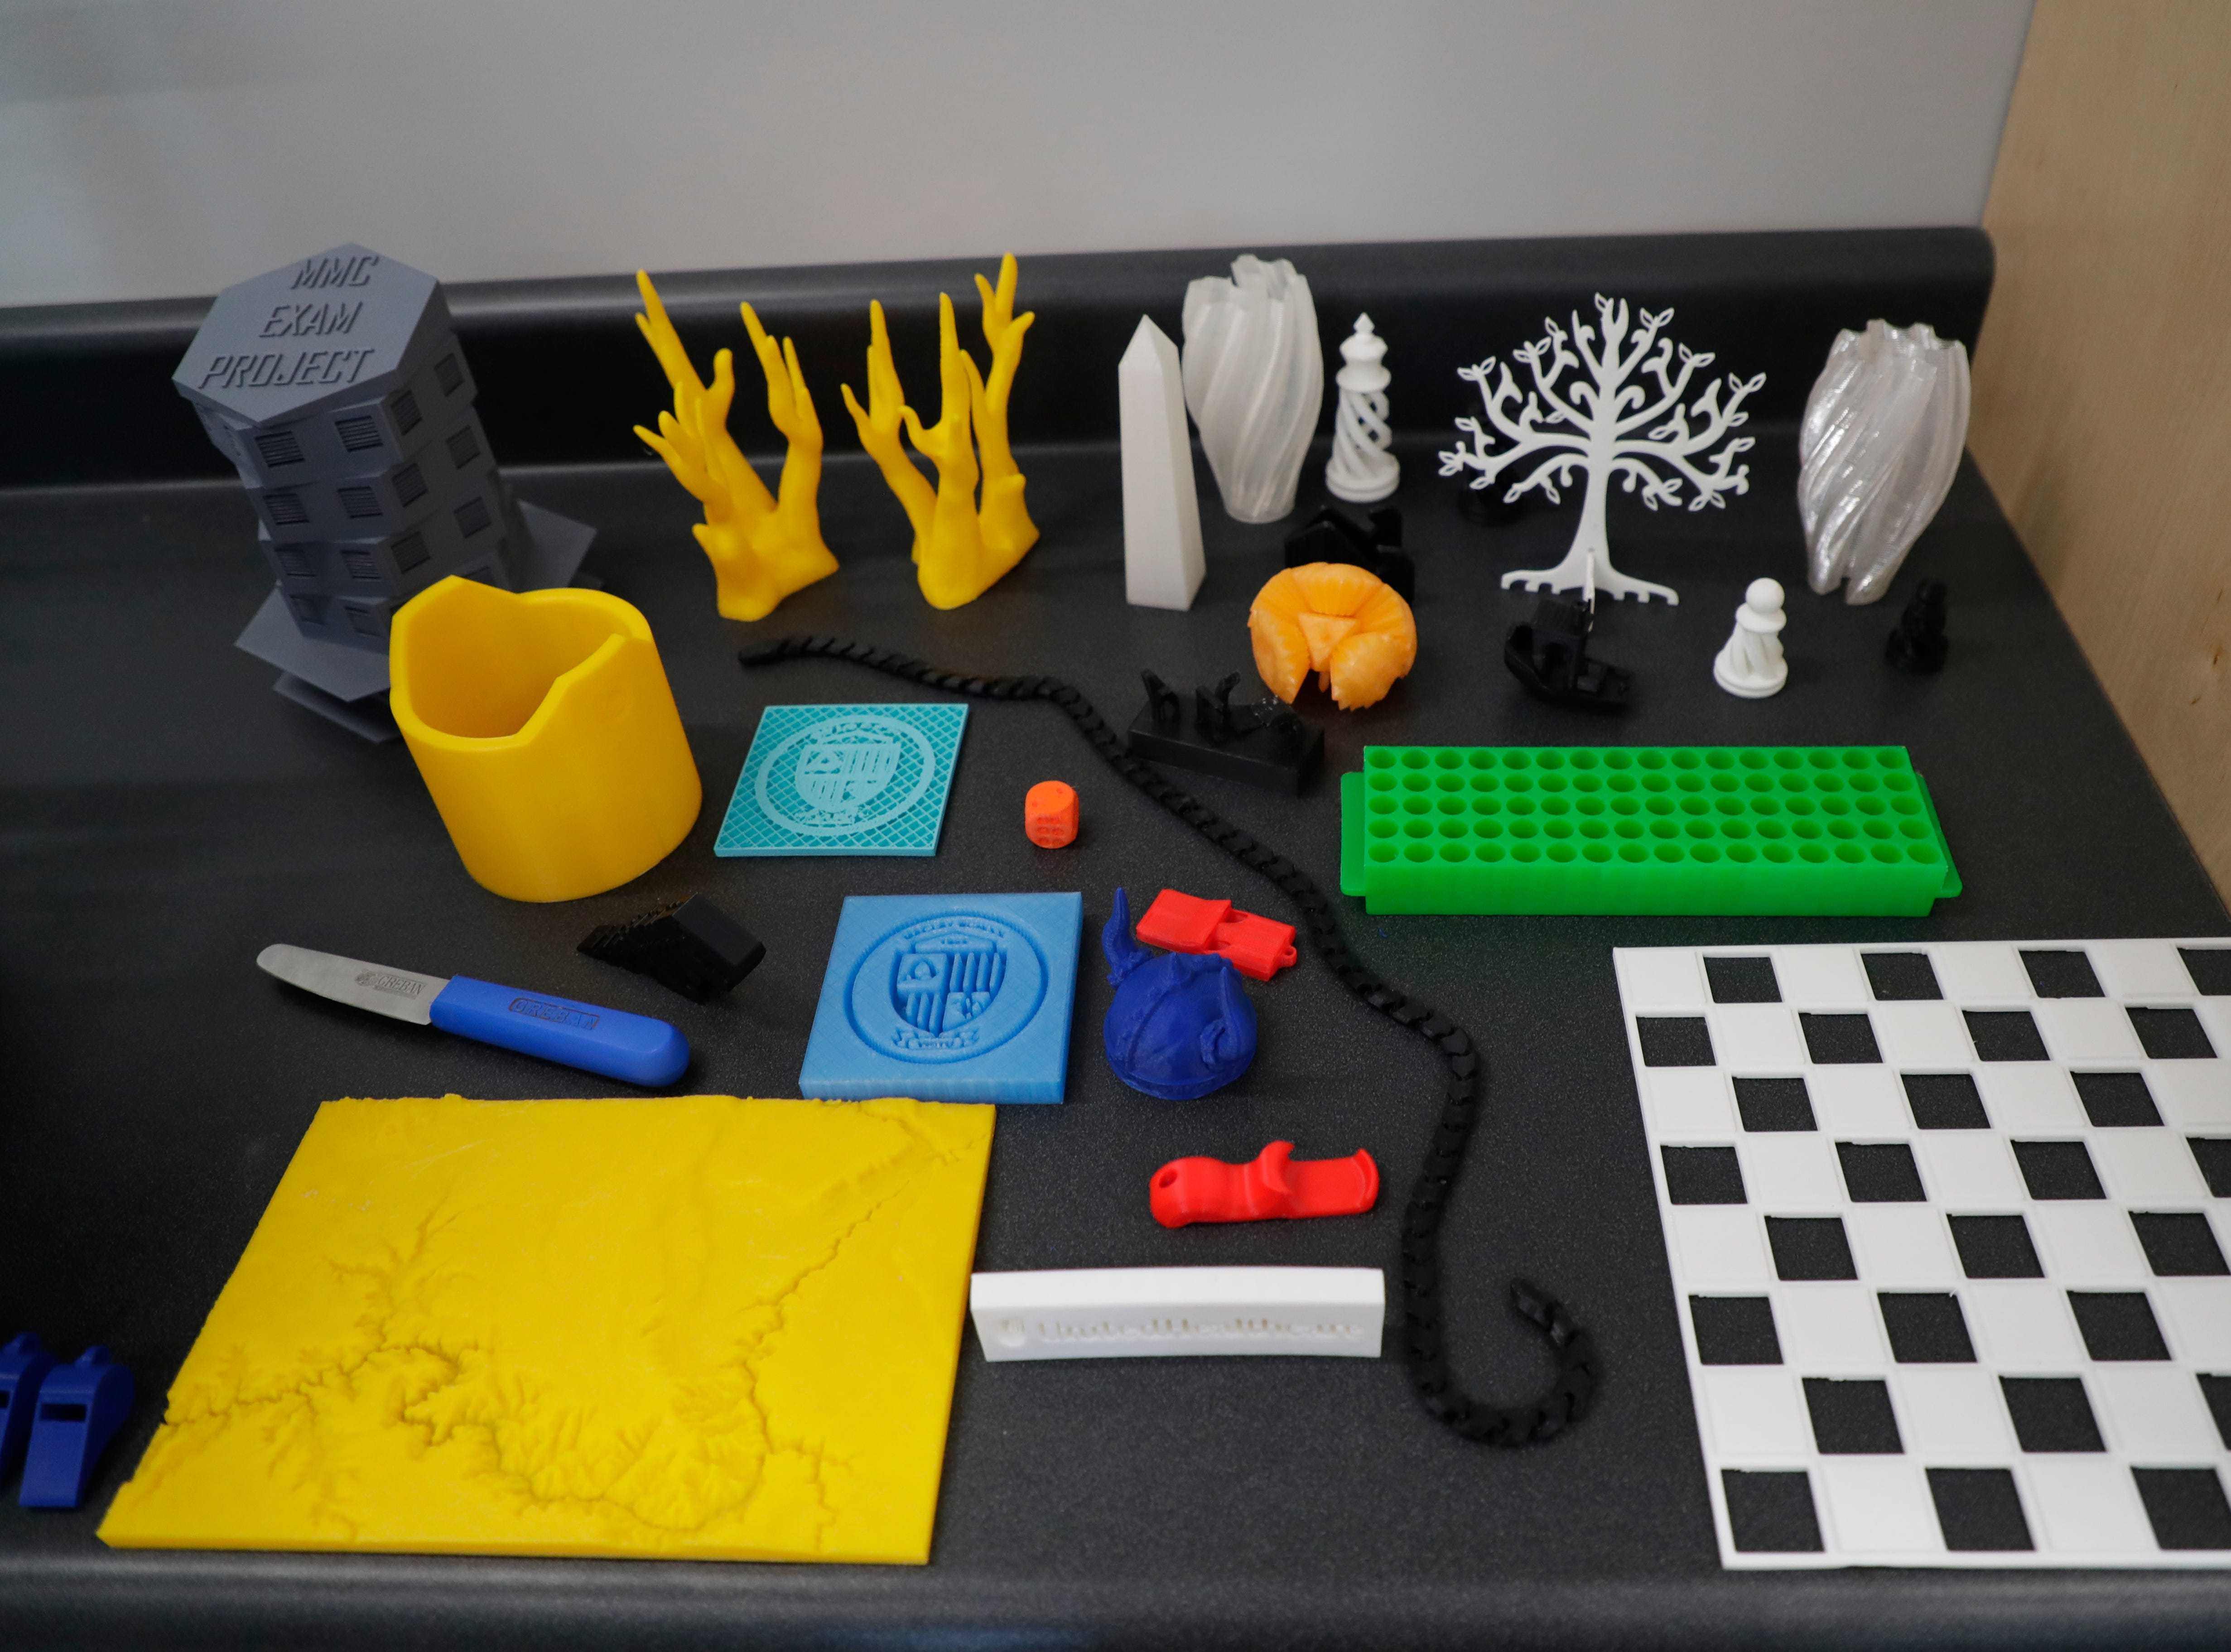 3-D printed creations made by students in Maclay's I Innovate class are displayed in the computer science, robotics and engineering classroom, one of three classrooms in the new Beck Family Research Center on the Maclay School campus Wednesday, May 15, 2019.